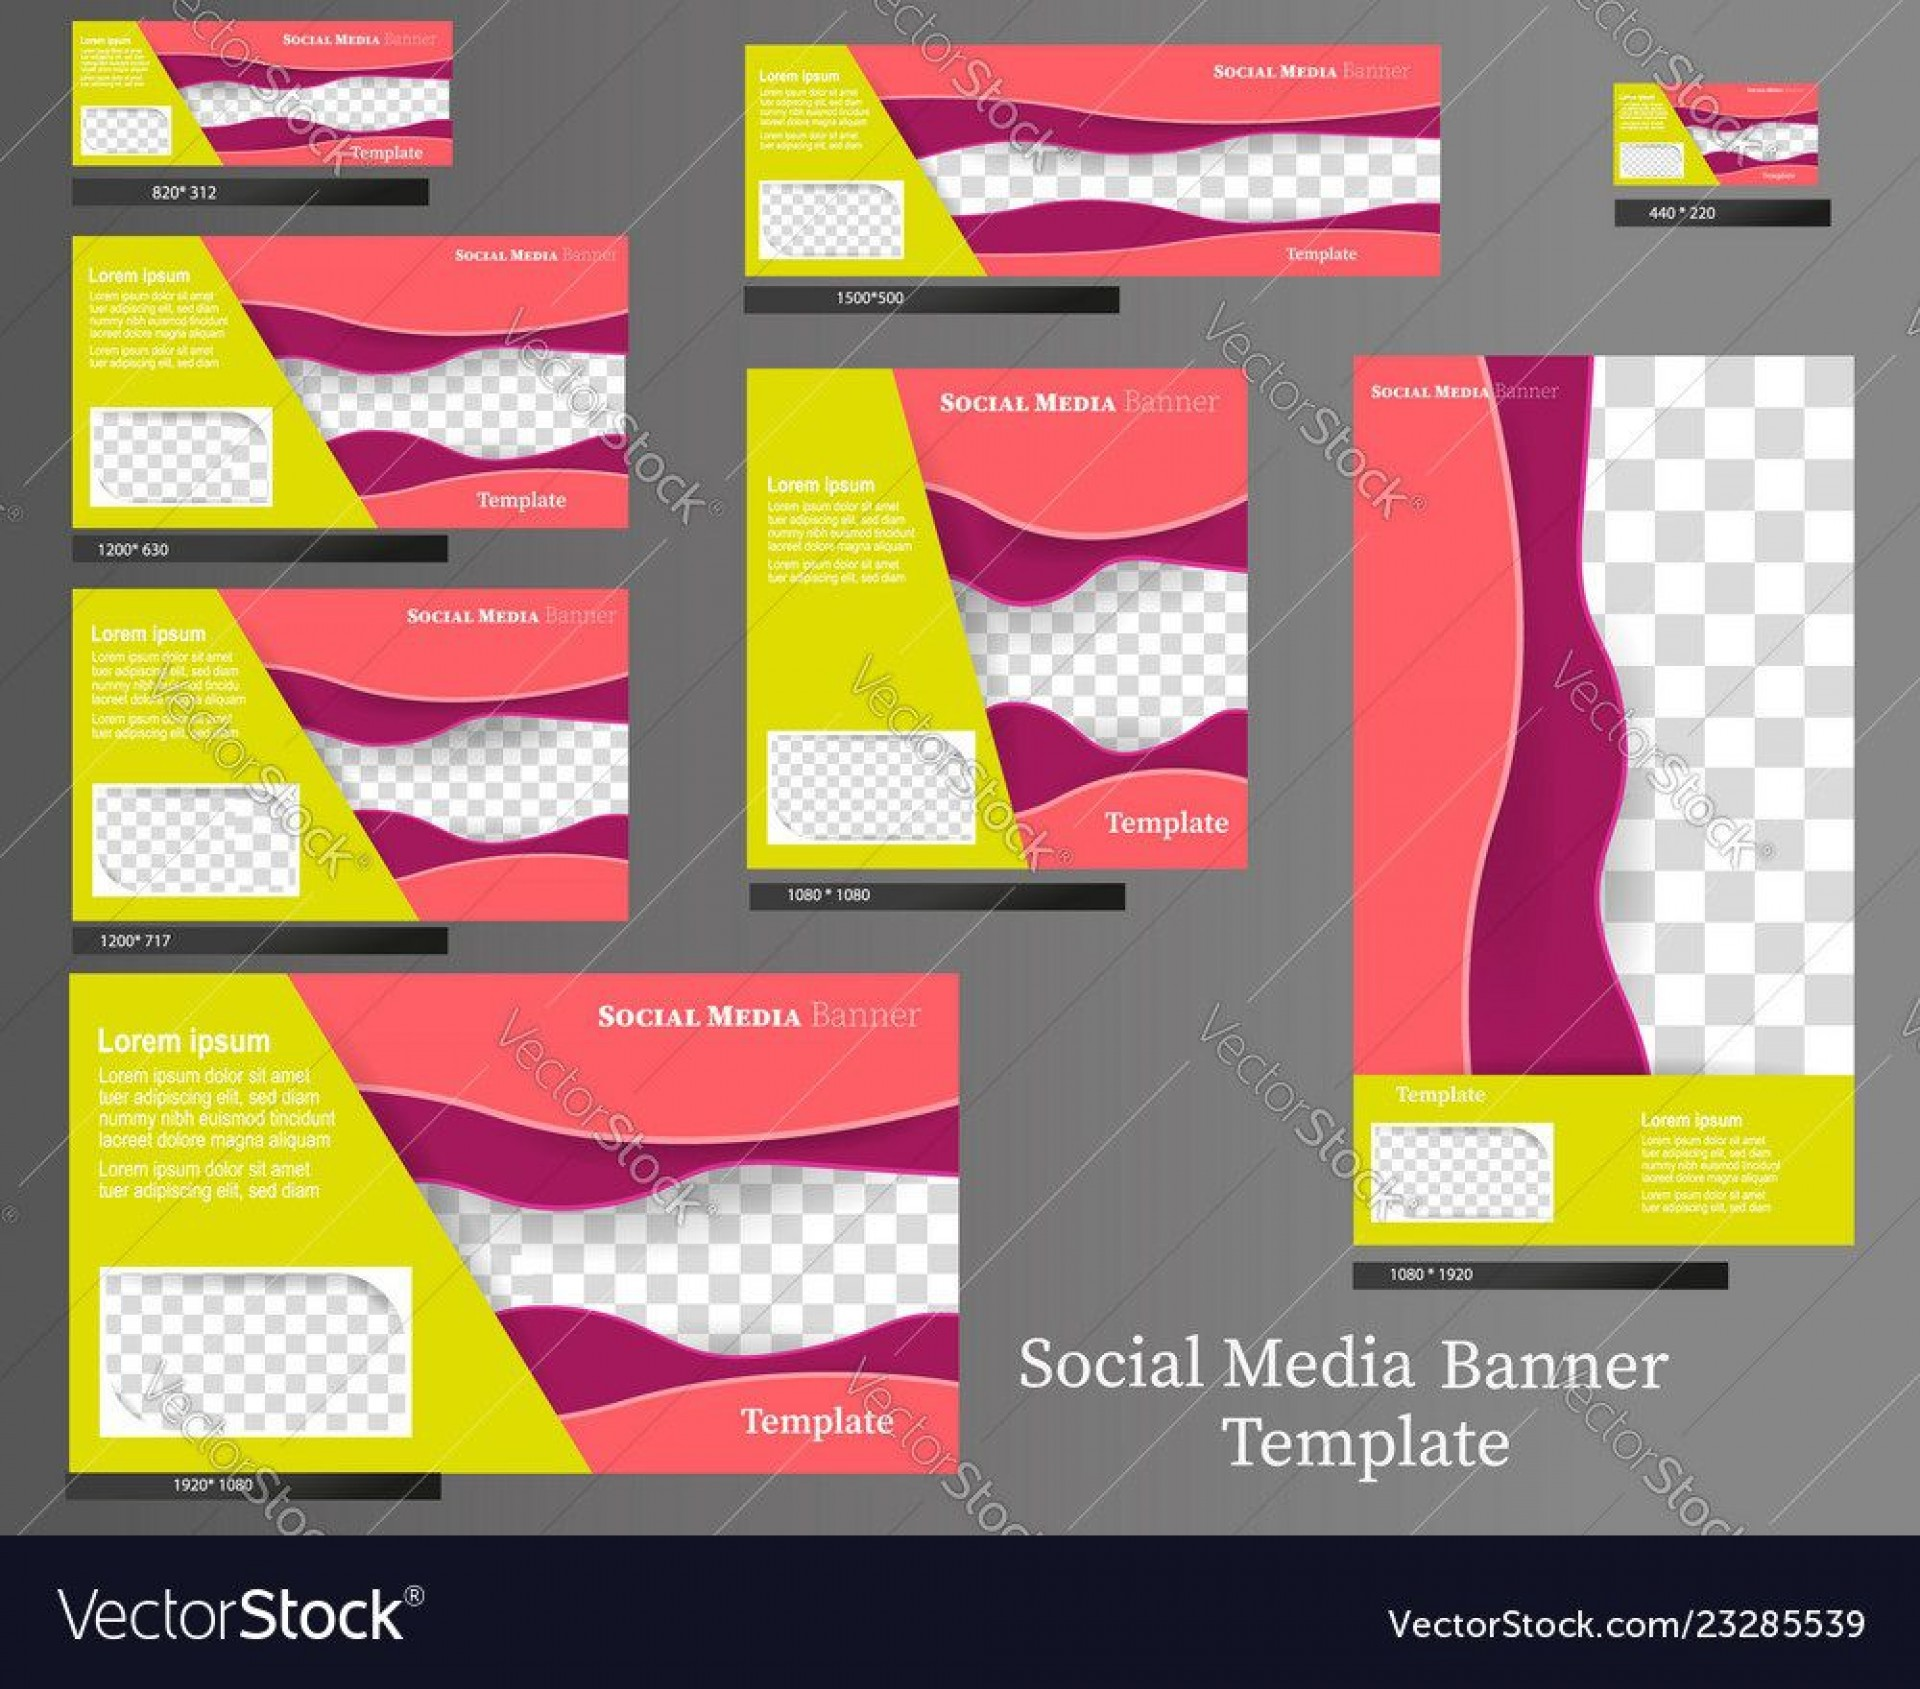 005 Amazing Social Media Banner Template Free Concept 1920